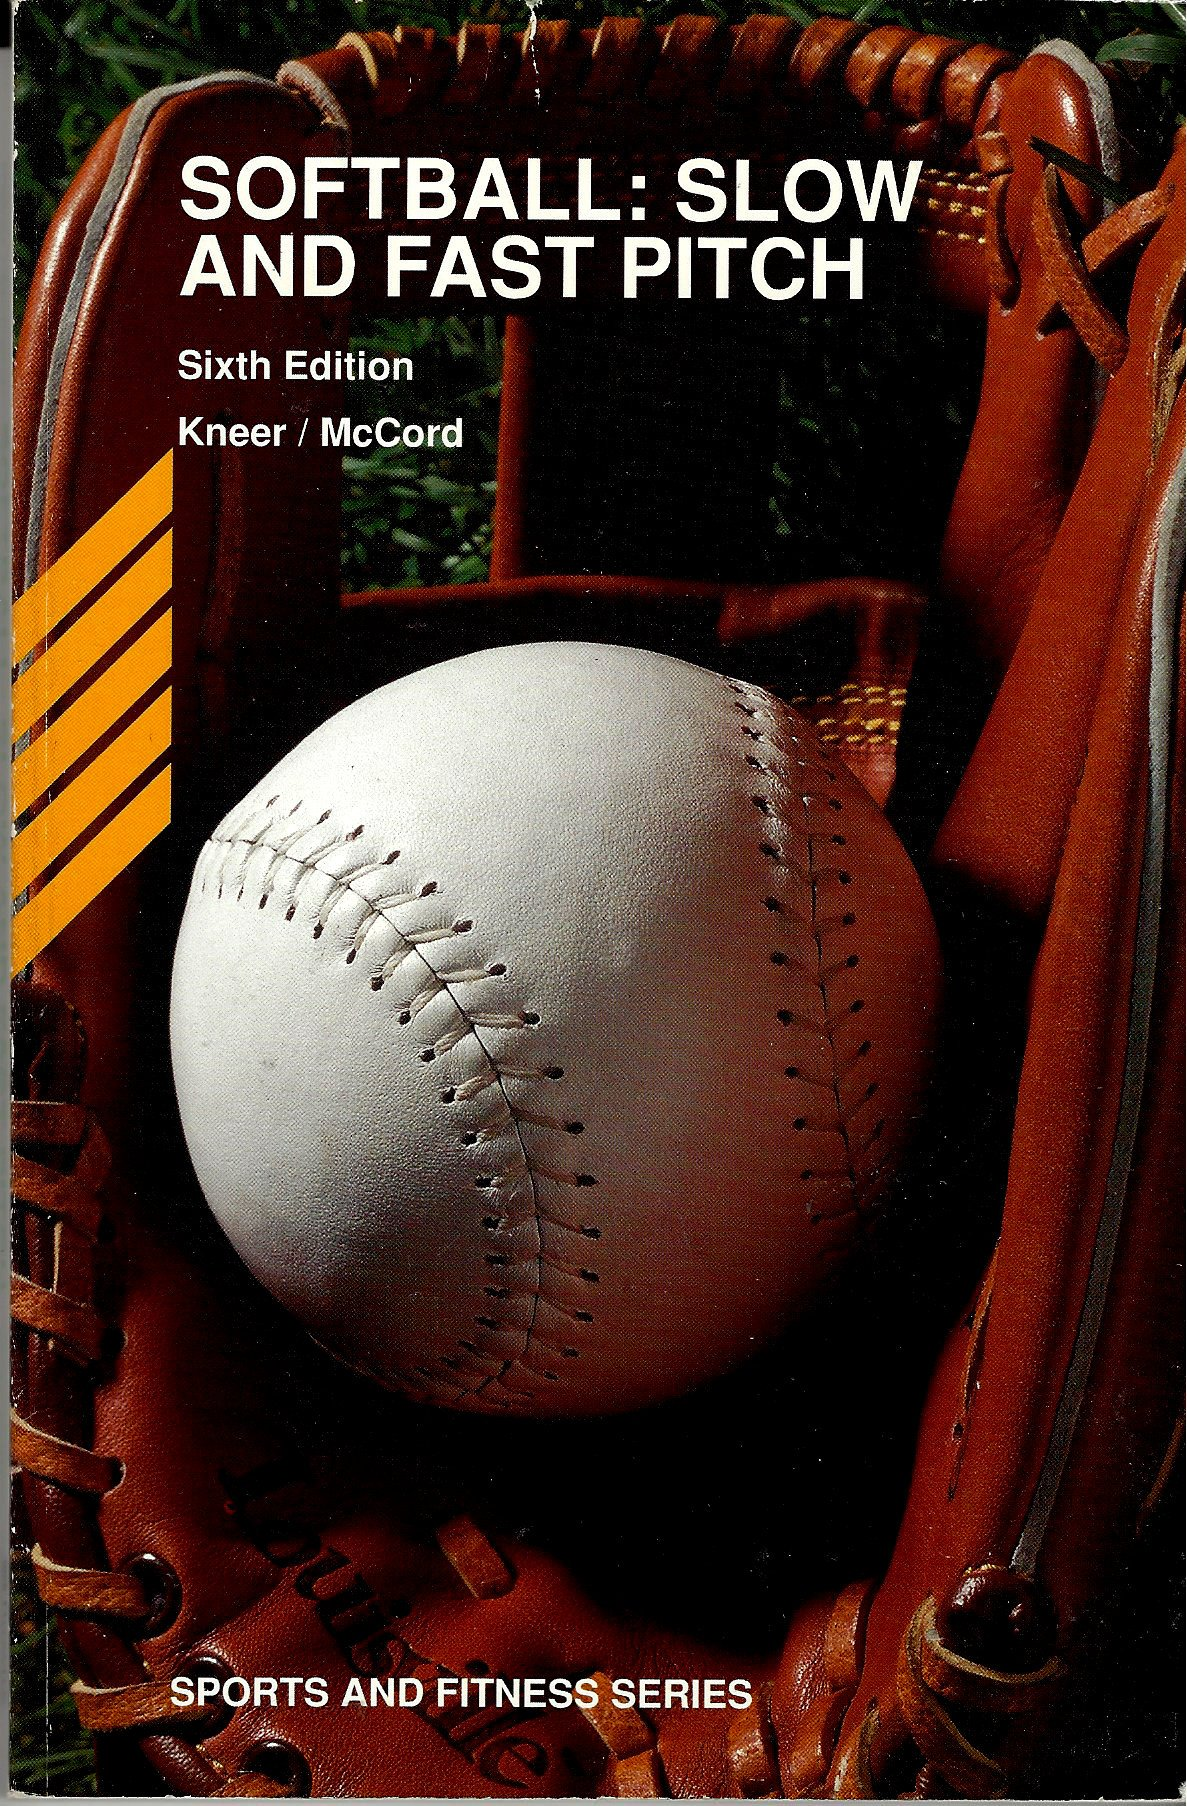 Softball: Slow and Fast Pitch by Brand: McGraw-Hill Humanities/Social Sciences/Languages